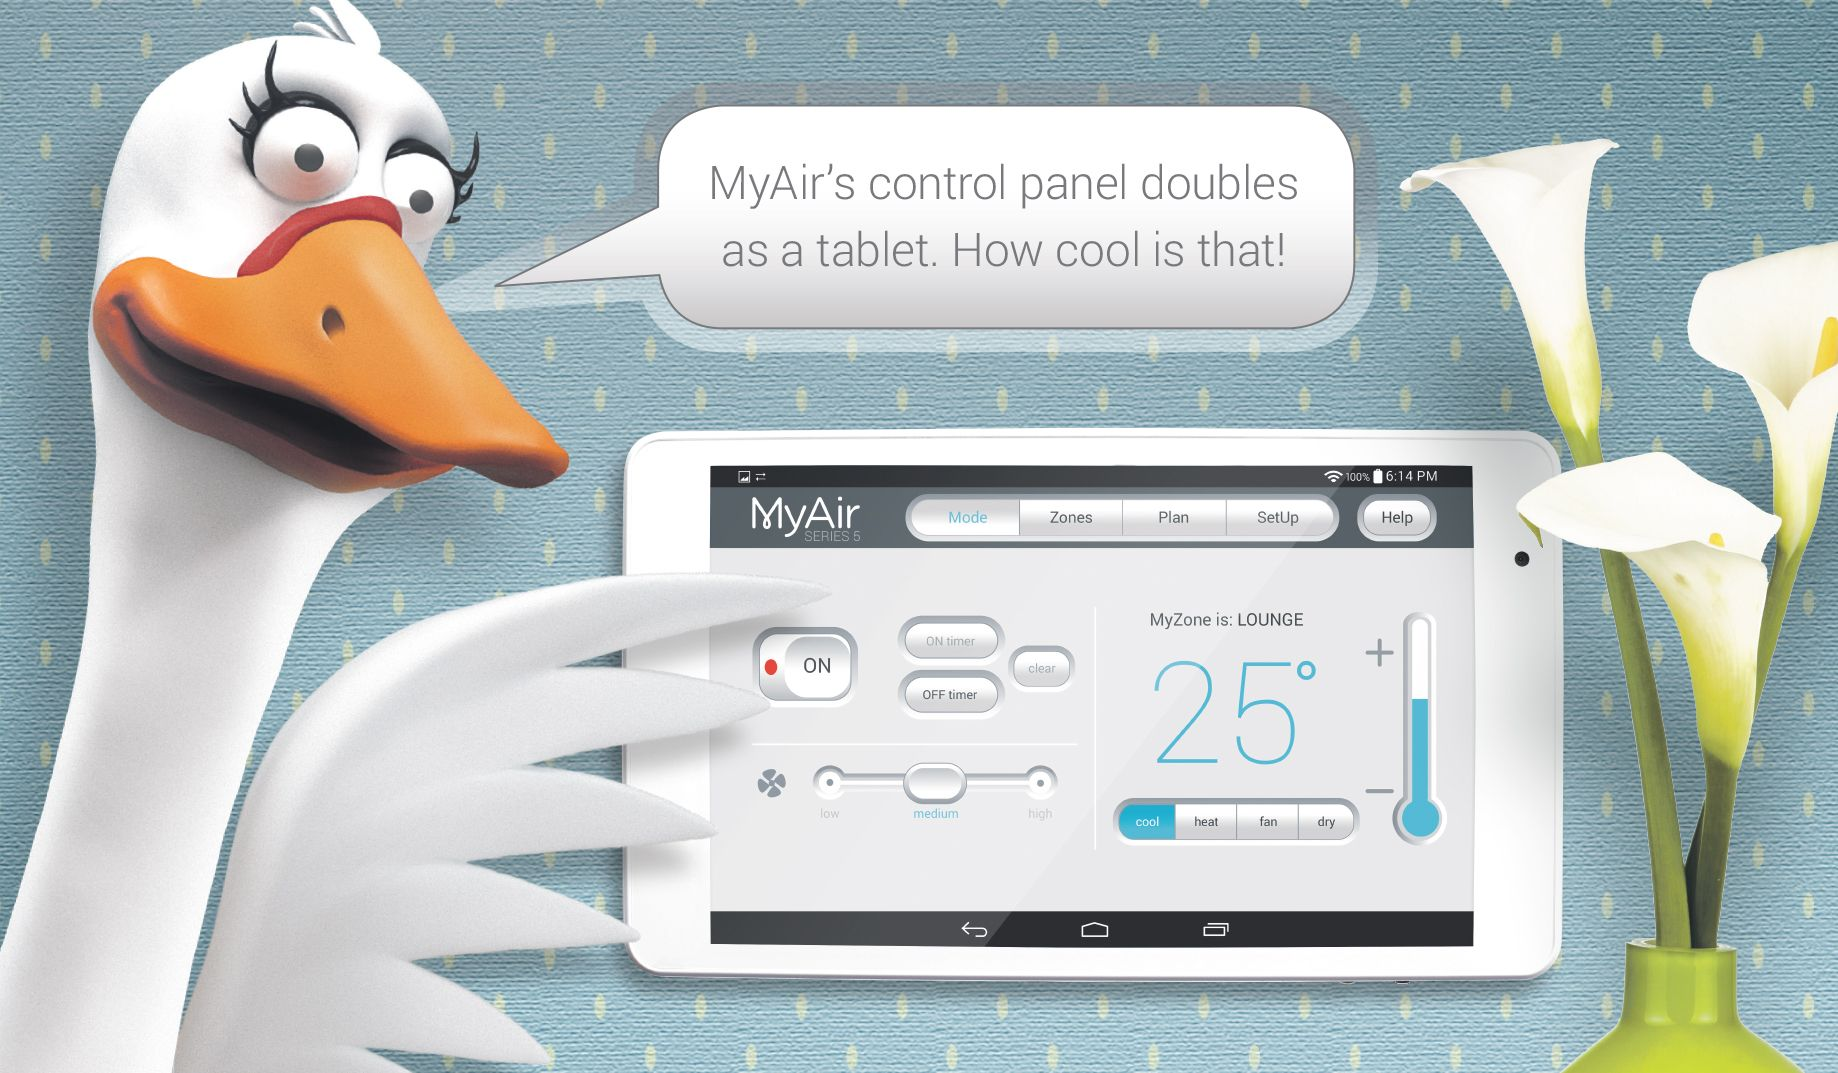 With a My air 5 Zoning system, you will be able to control